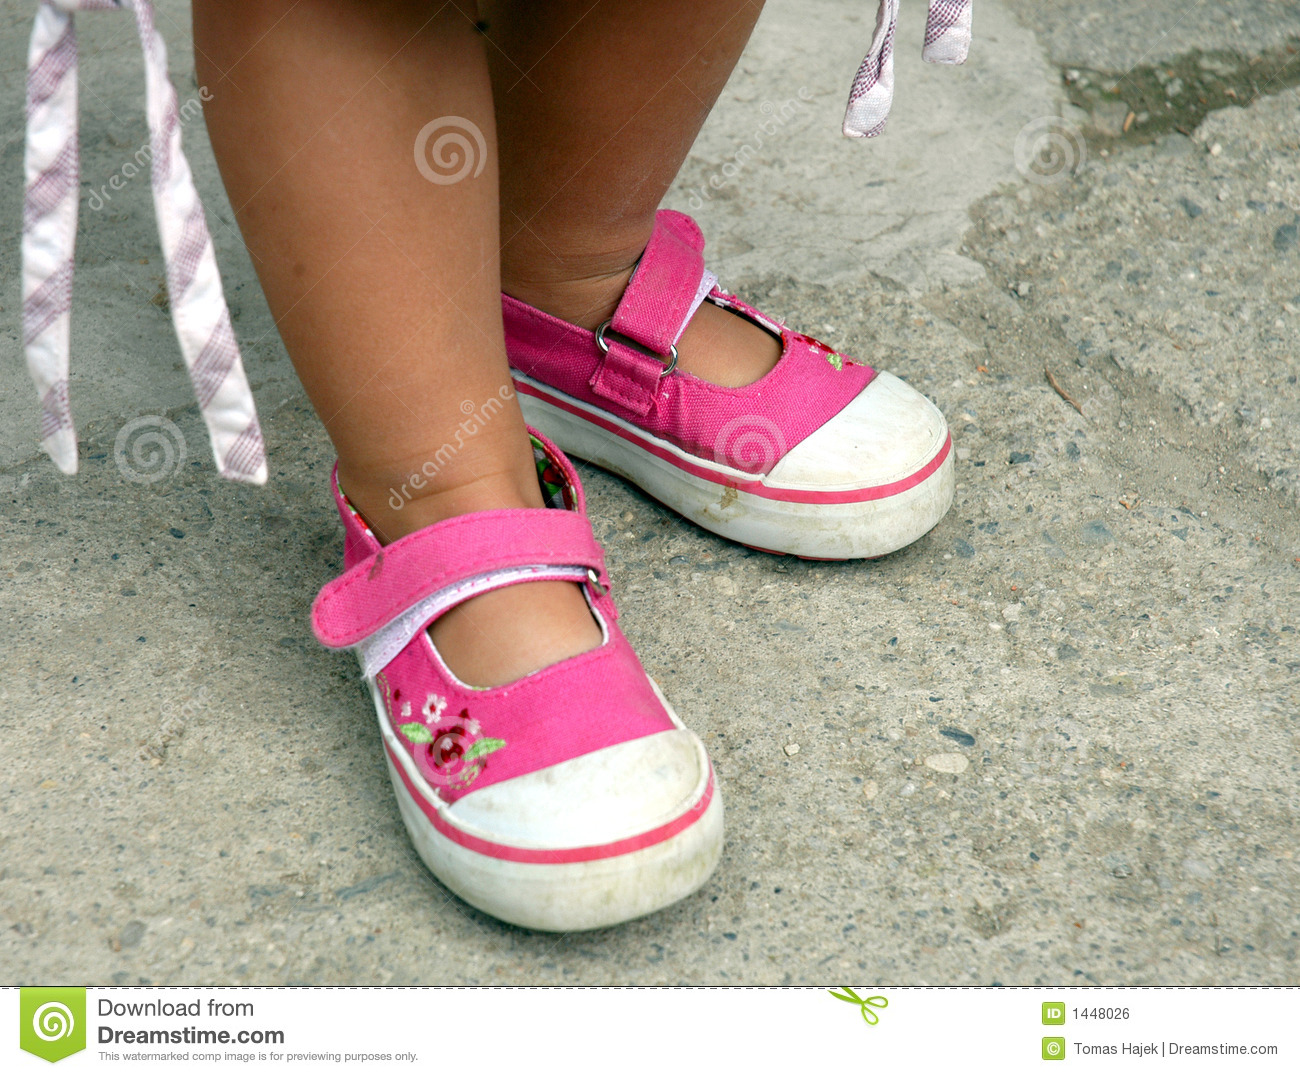 Official makeshop-zpnxx1b0.cf Site - Shop girls clearance shoes, boots, sandals, & more. Find girls shoes for every season and activity at great prices.